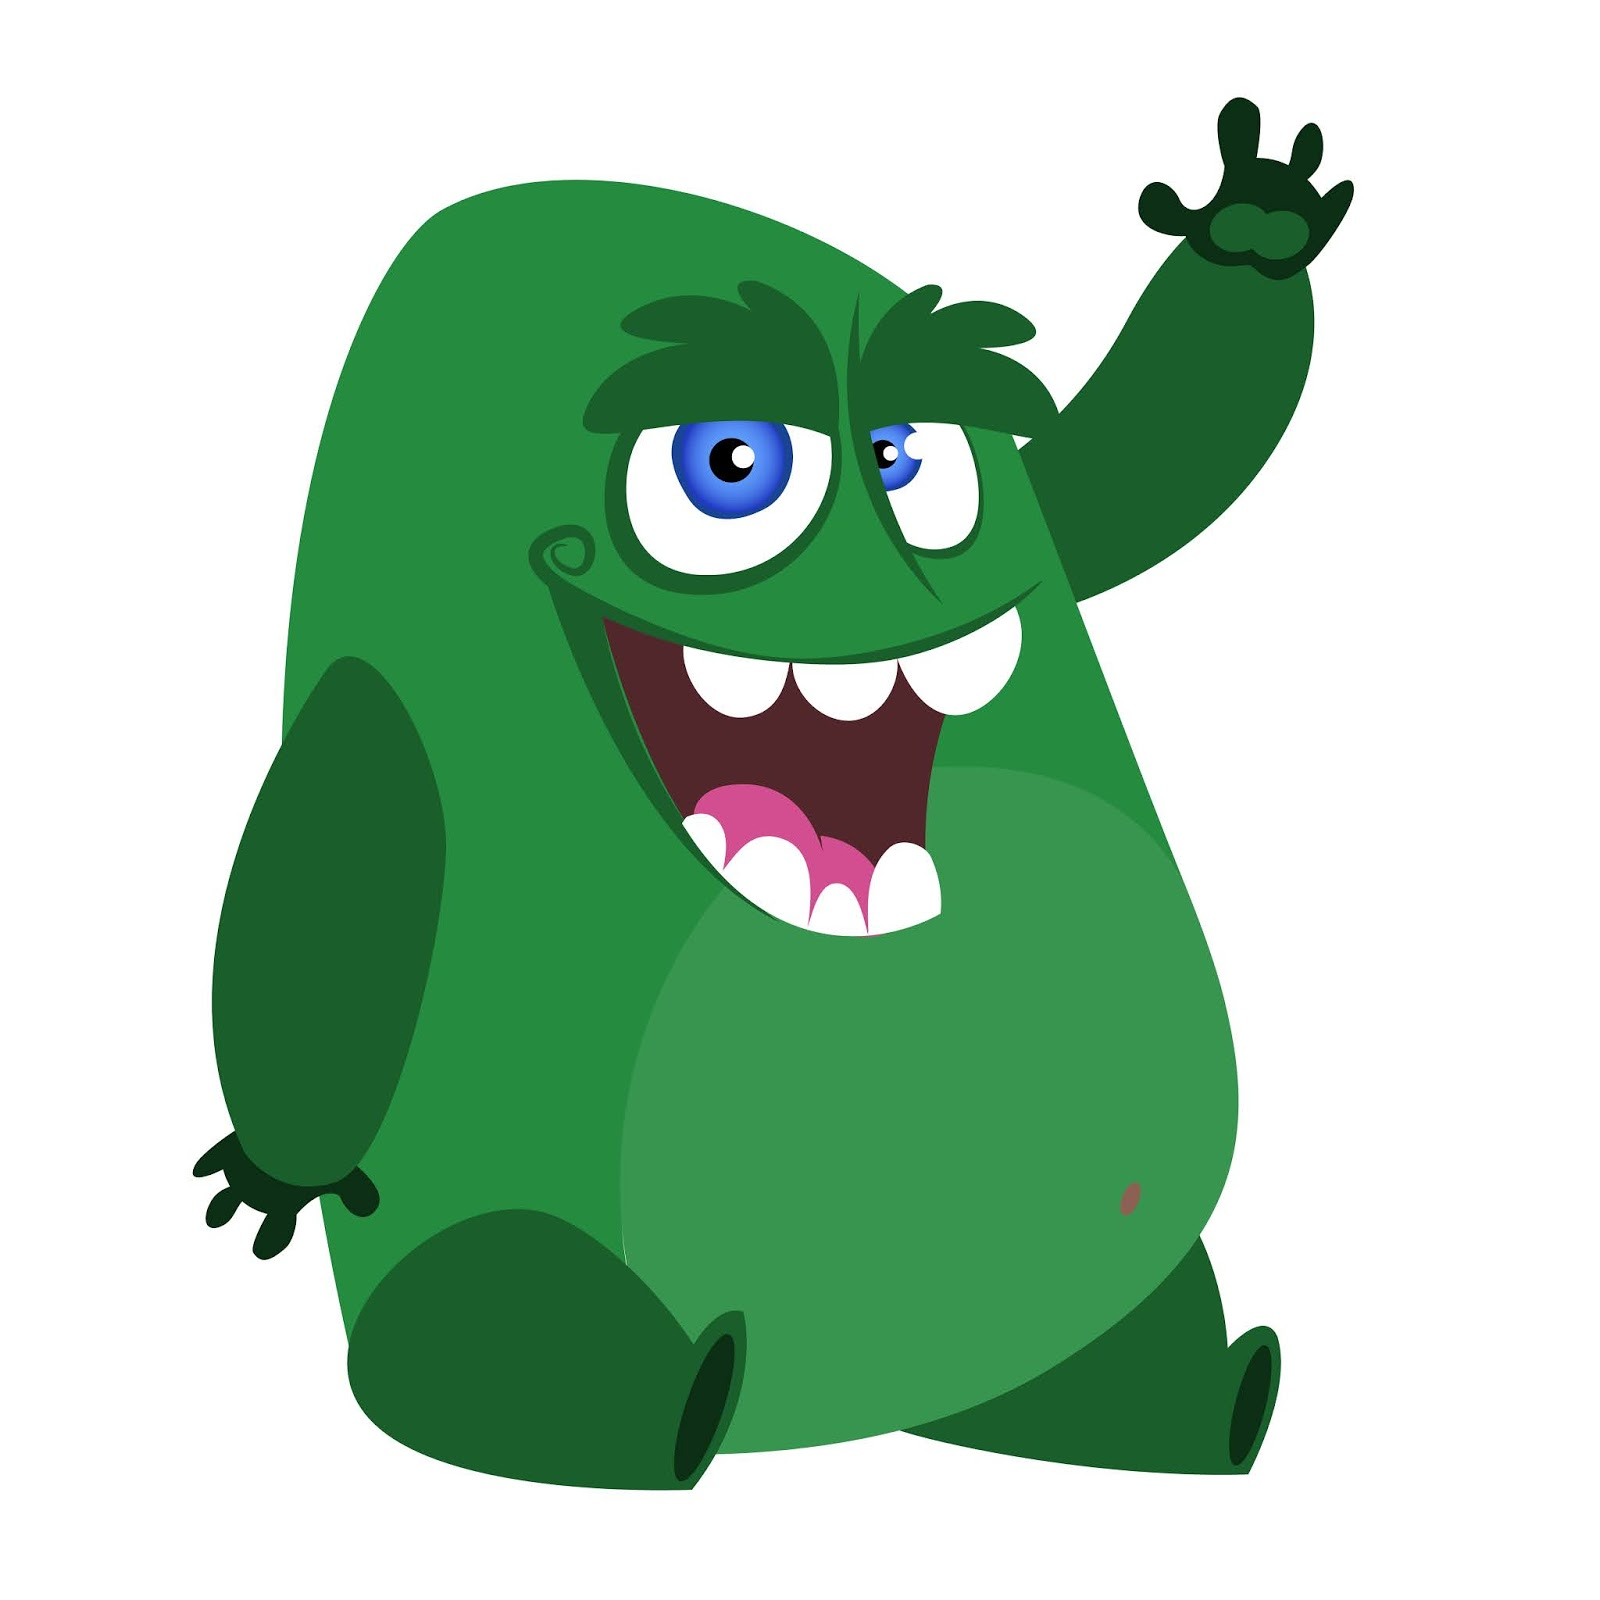 Angry Cartoon Monster Character Illustration Free Download Vector CDR, AI, EPS and PNG Formats